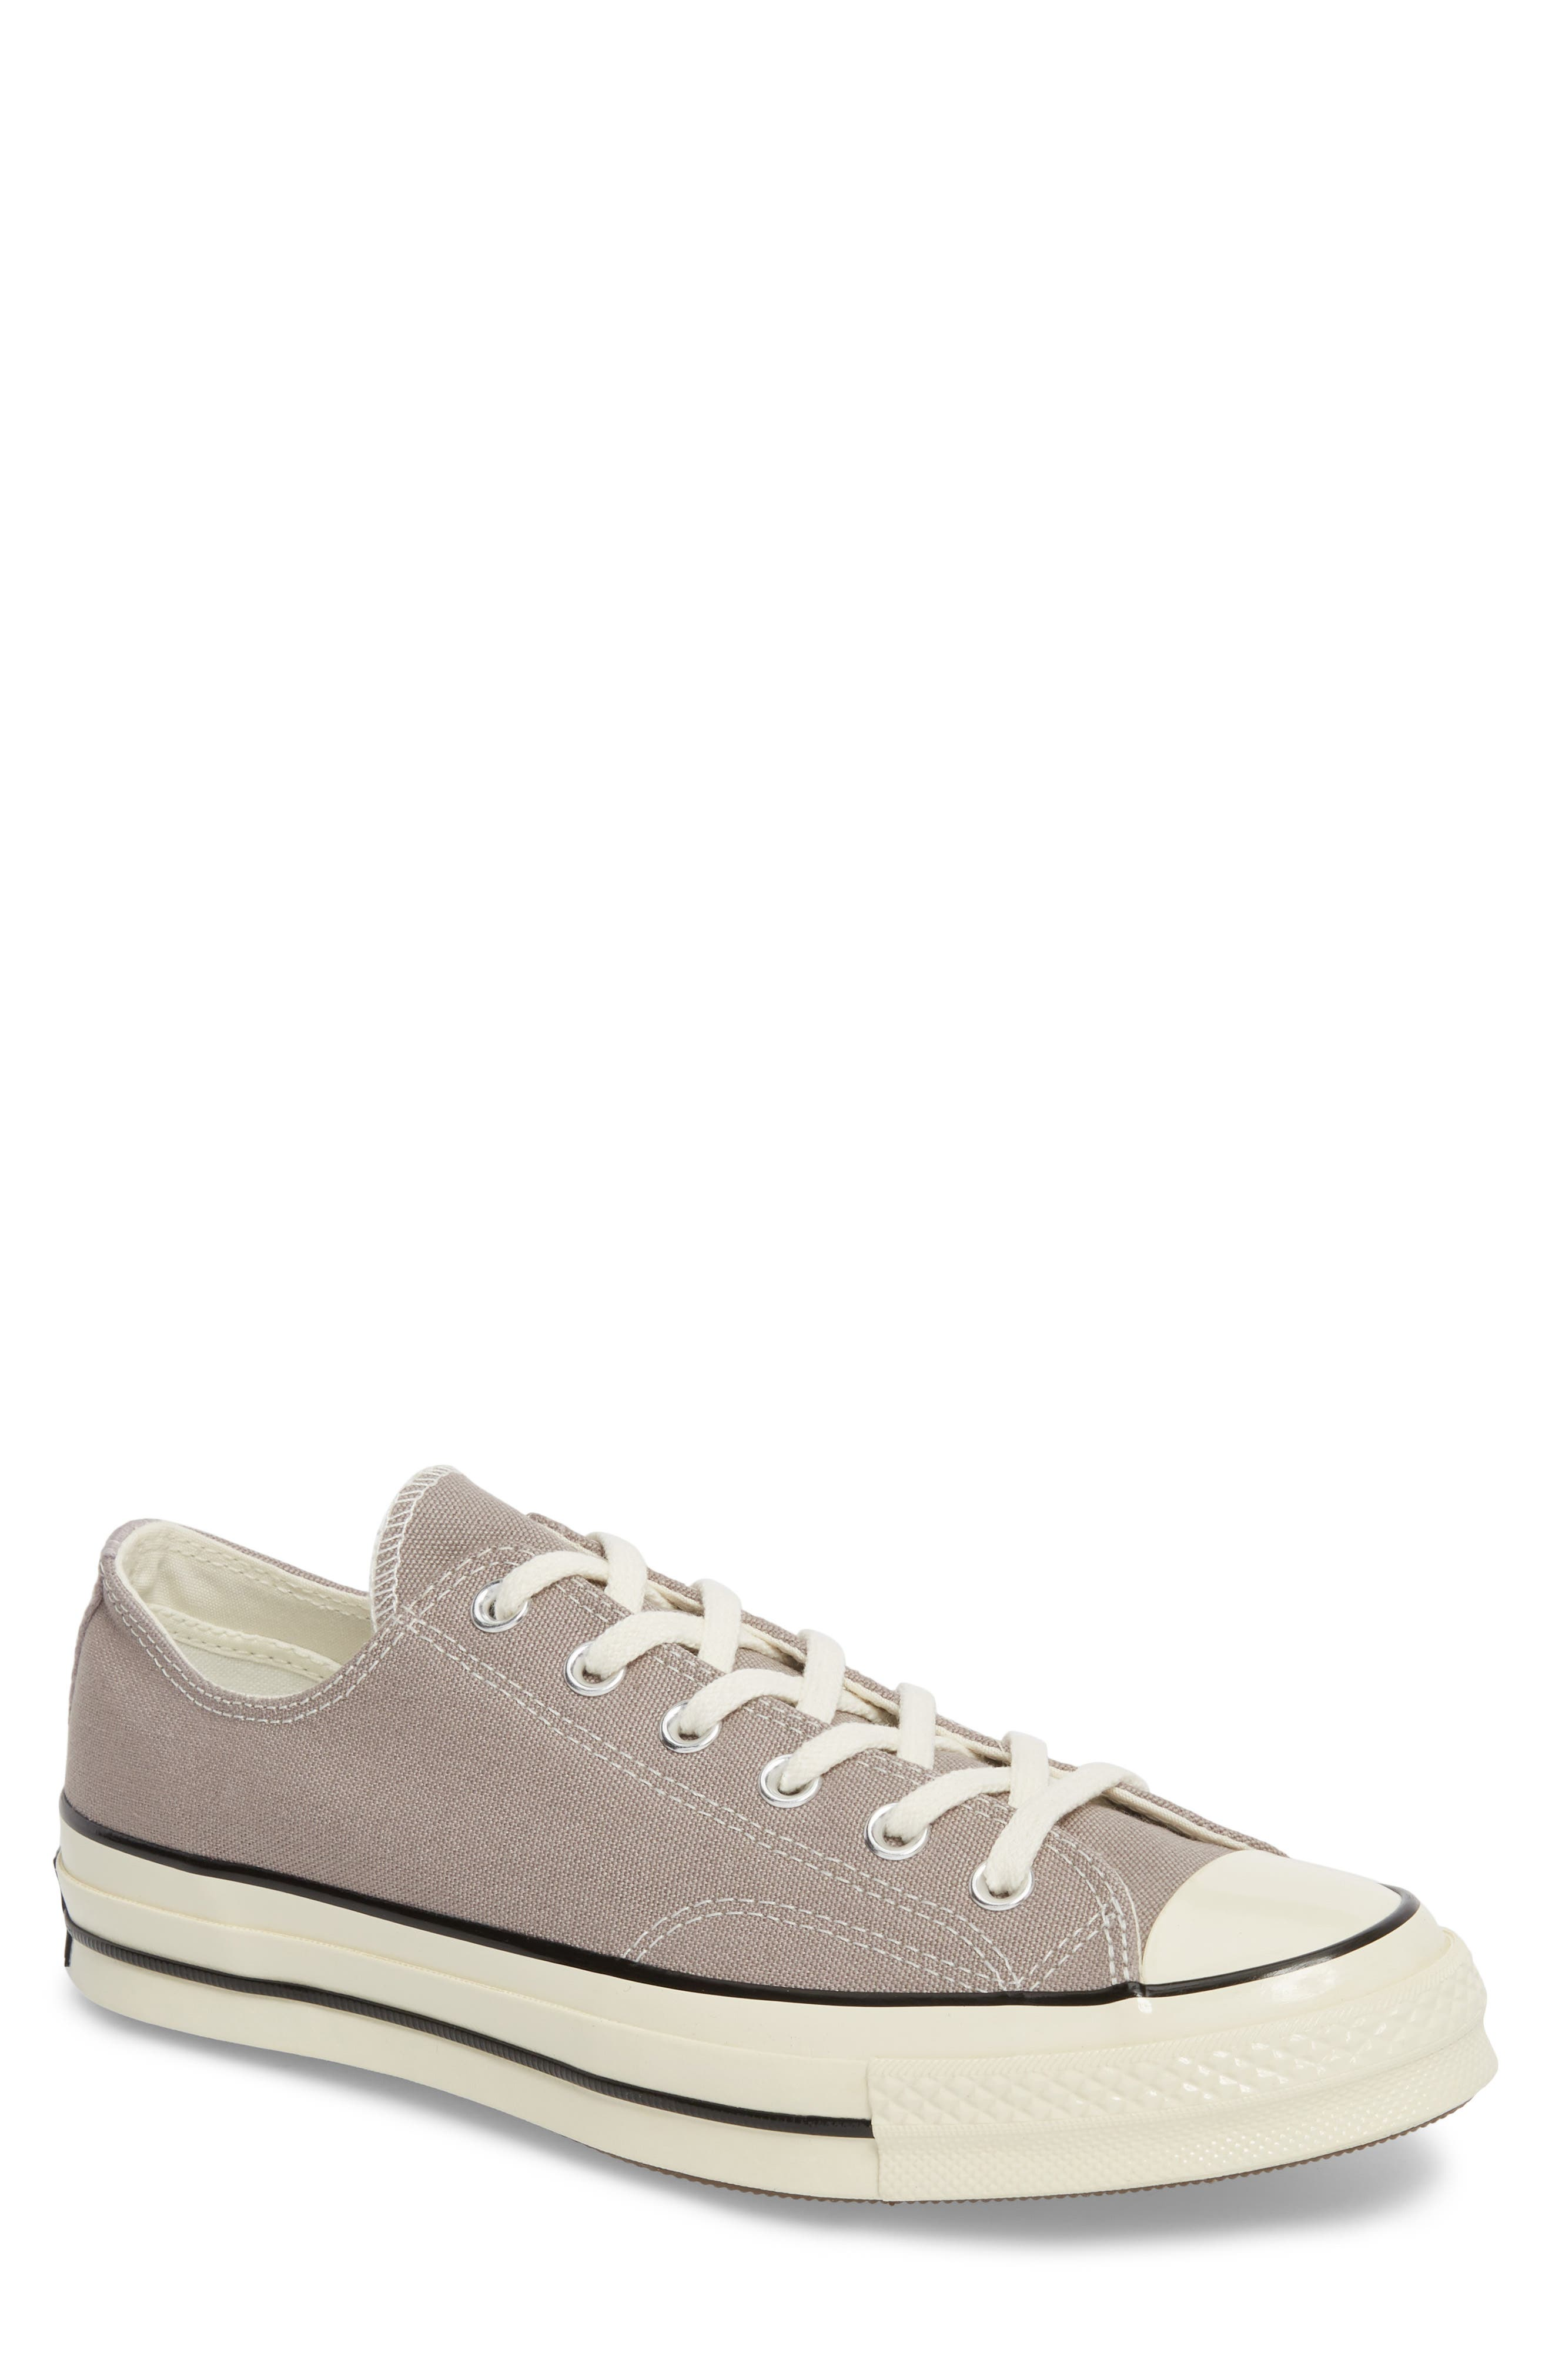 Chuck Taylor<sup>®</sup> All Star<sup>®</sup> 70 Heritage Sneaker,                         Main,                         color, 035